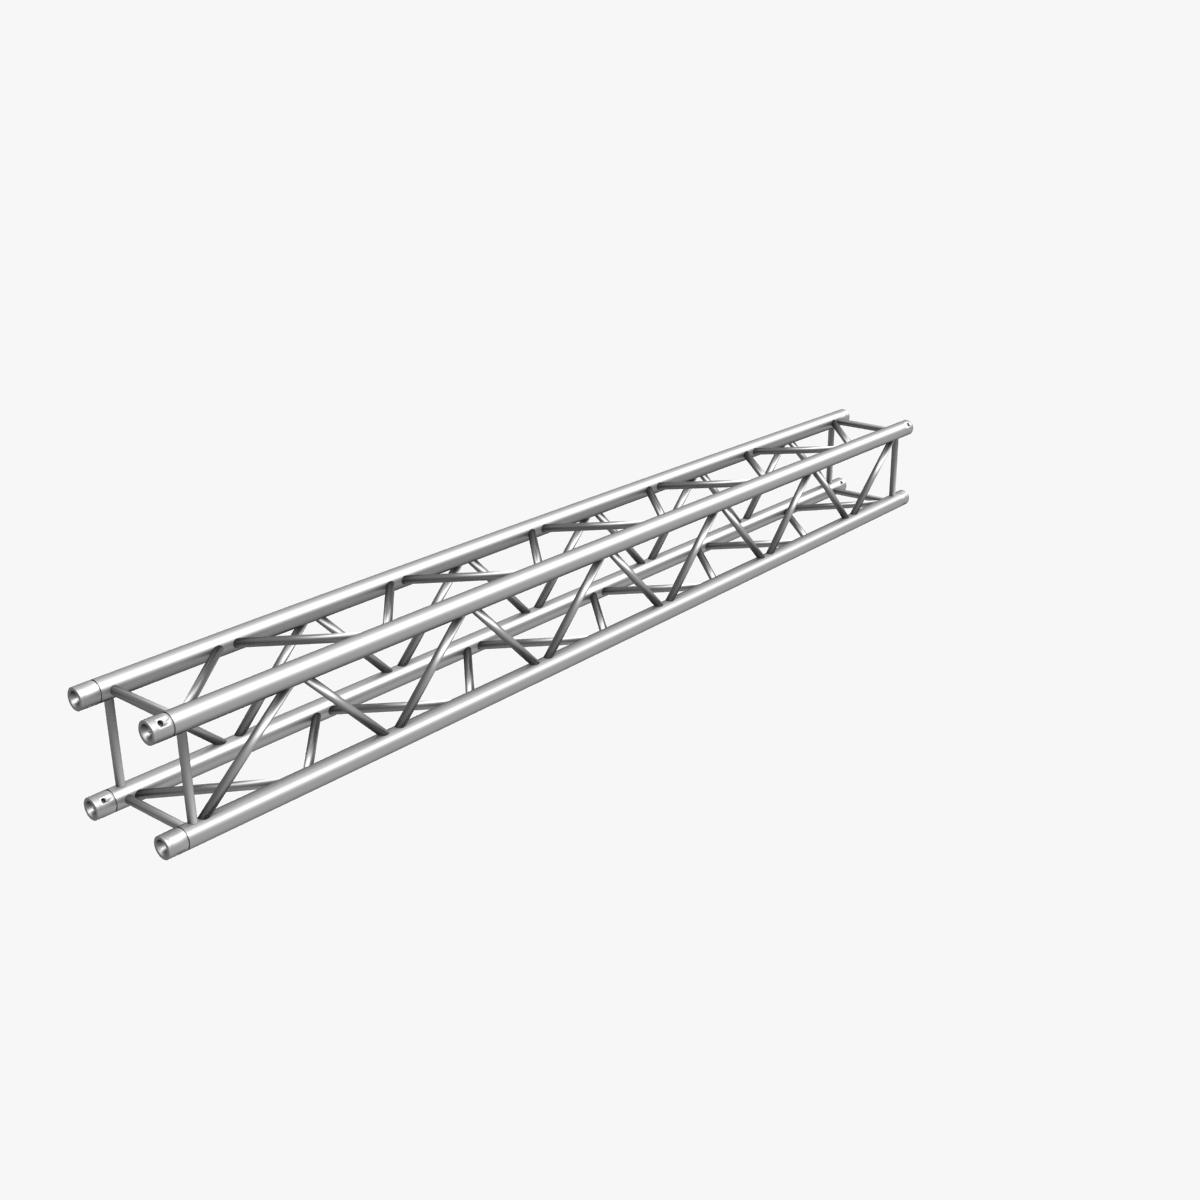 square truss standard (collection 24 modular) 3d model 3ds max dxf fbx c4d dae  texture obj 216336